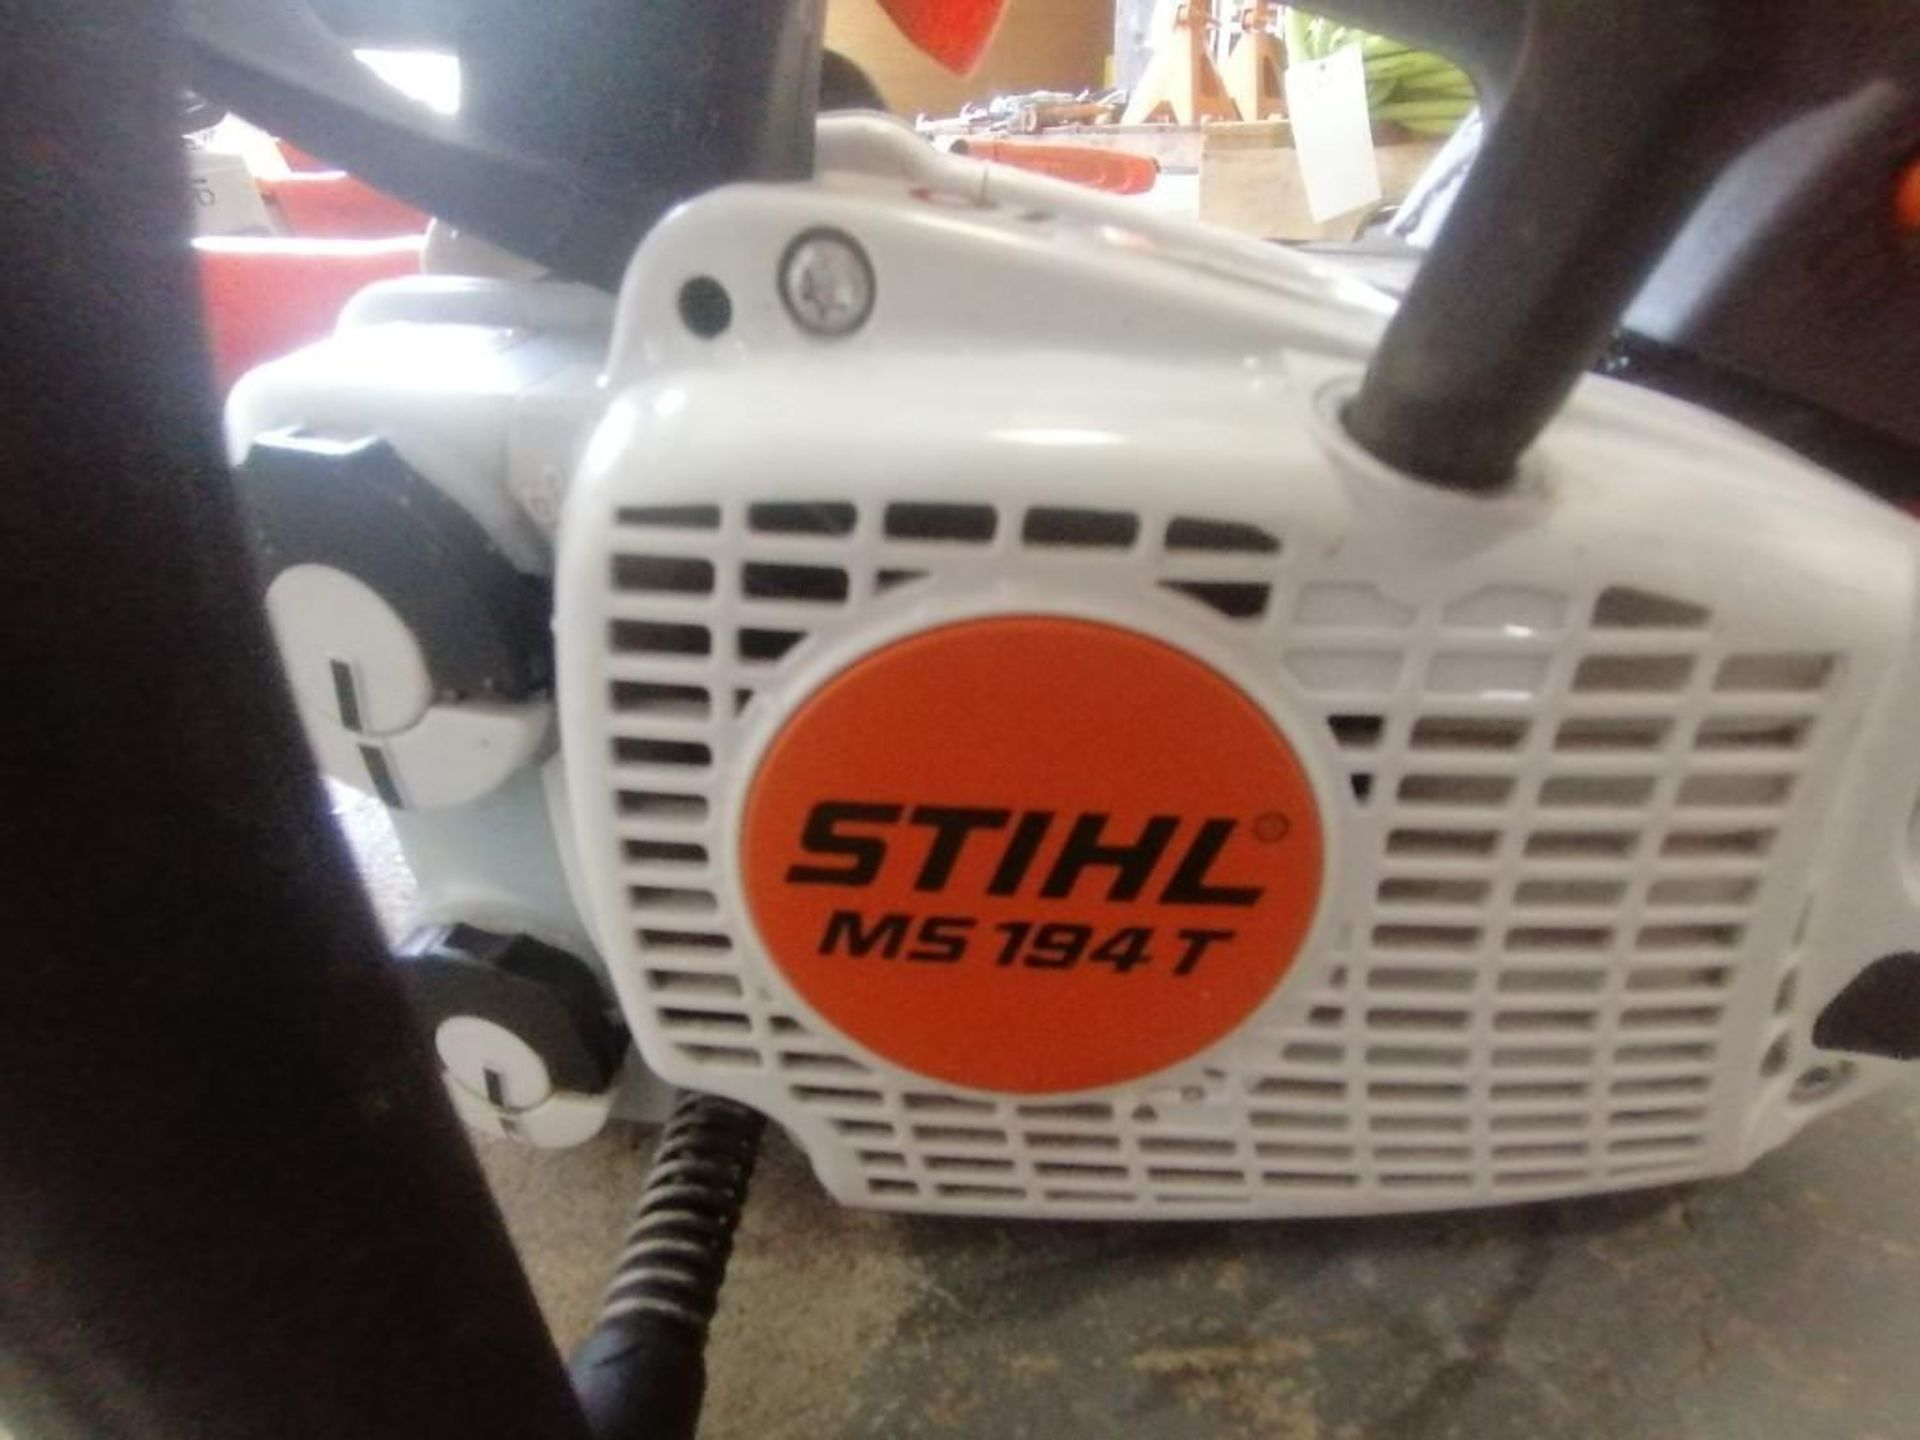 Lot 19 - (1) Stihl MS194T Chainsaw. Located at 301 E Henry Street, Mt. Pleasant, IA 52641.